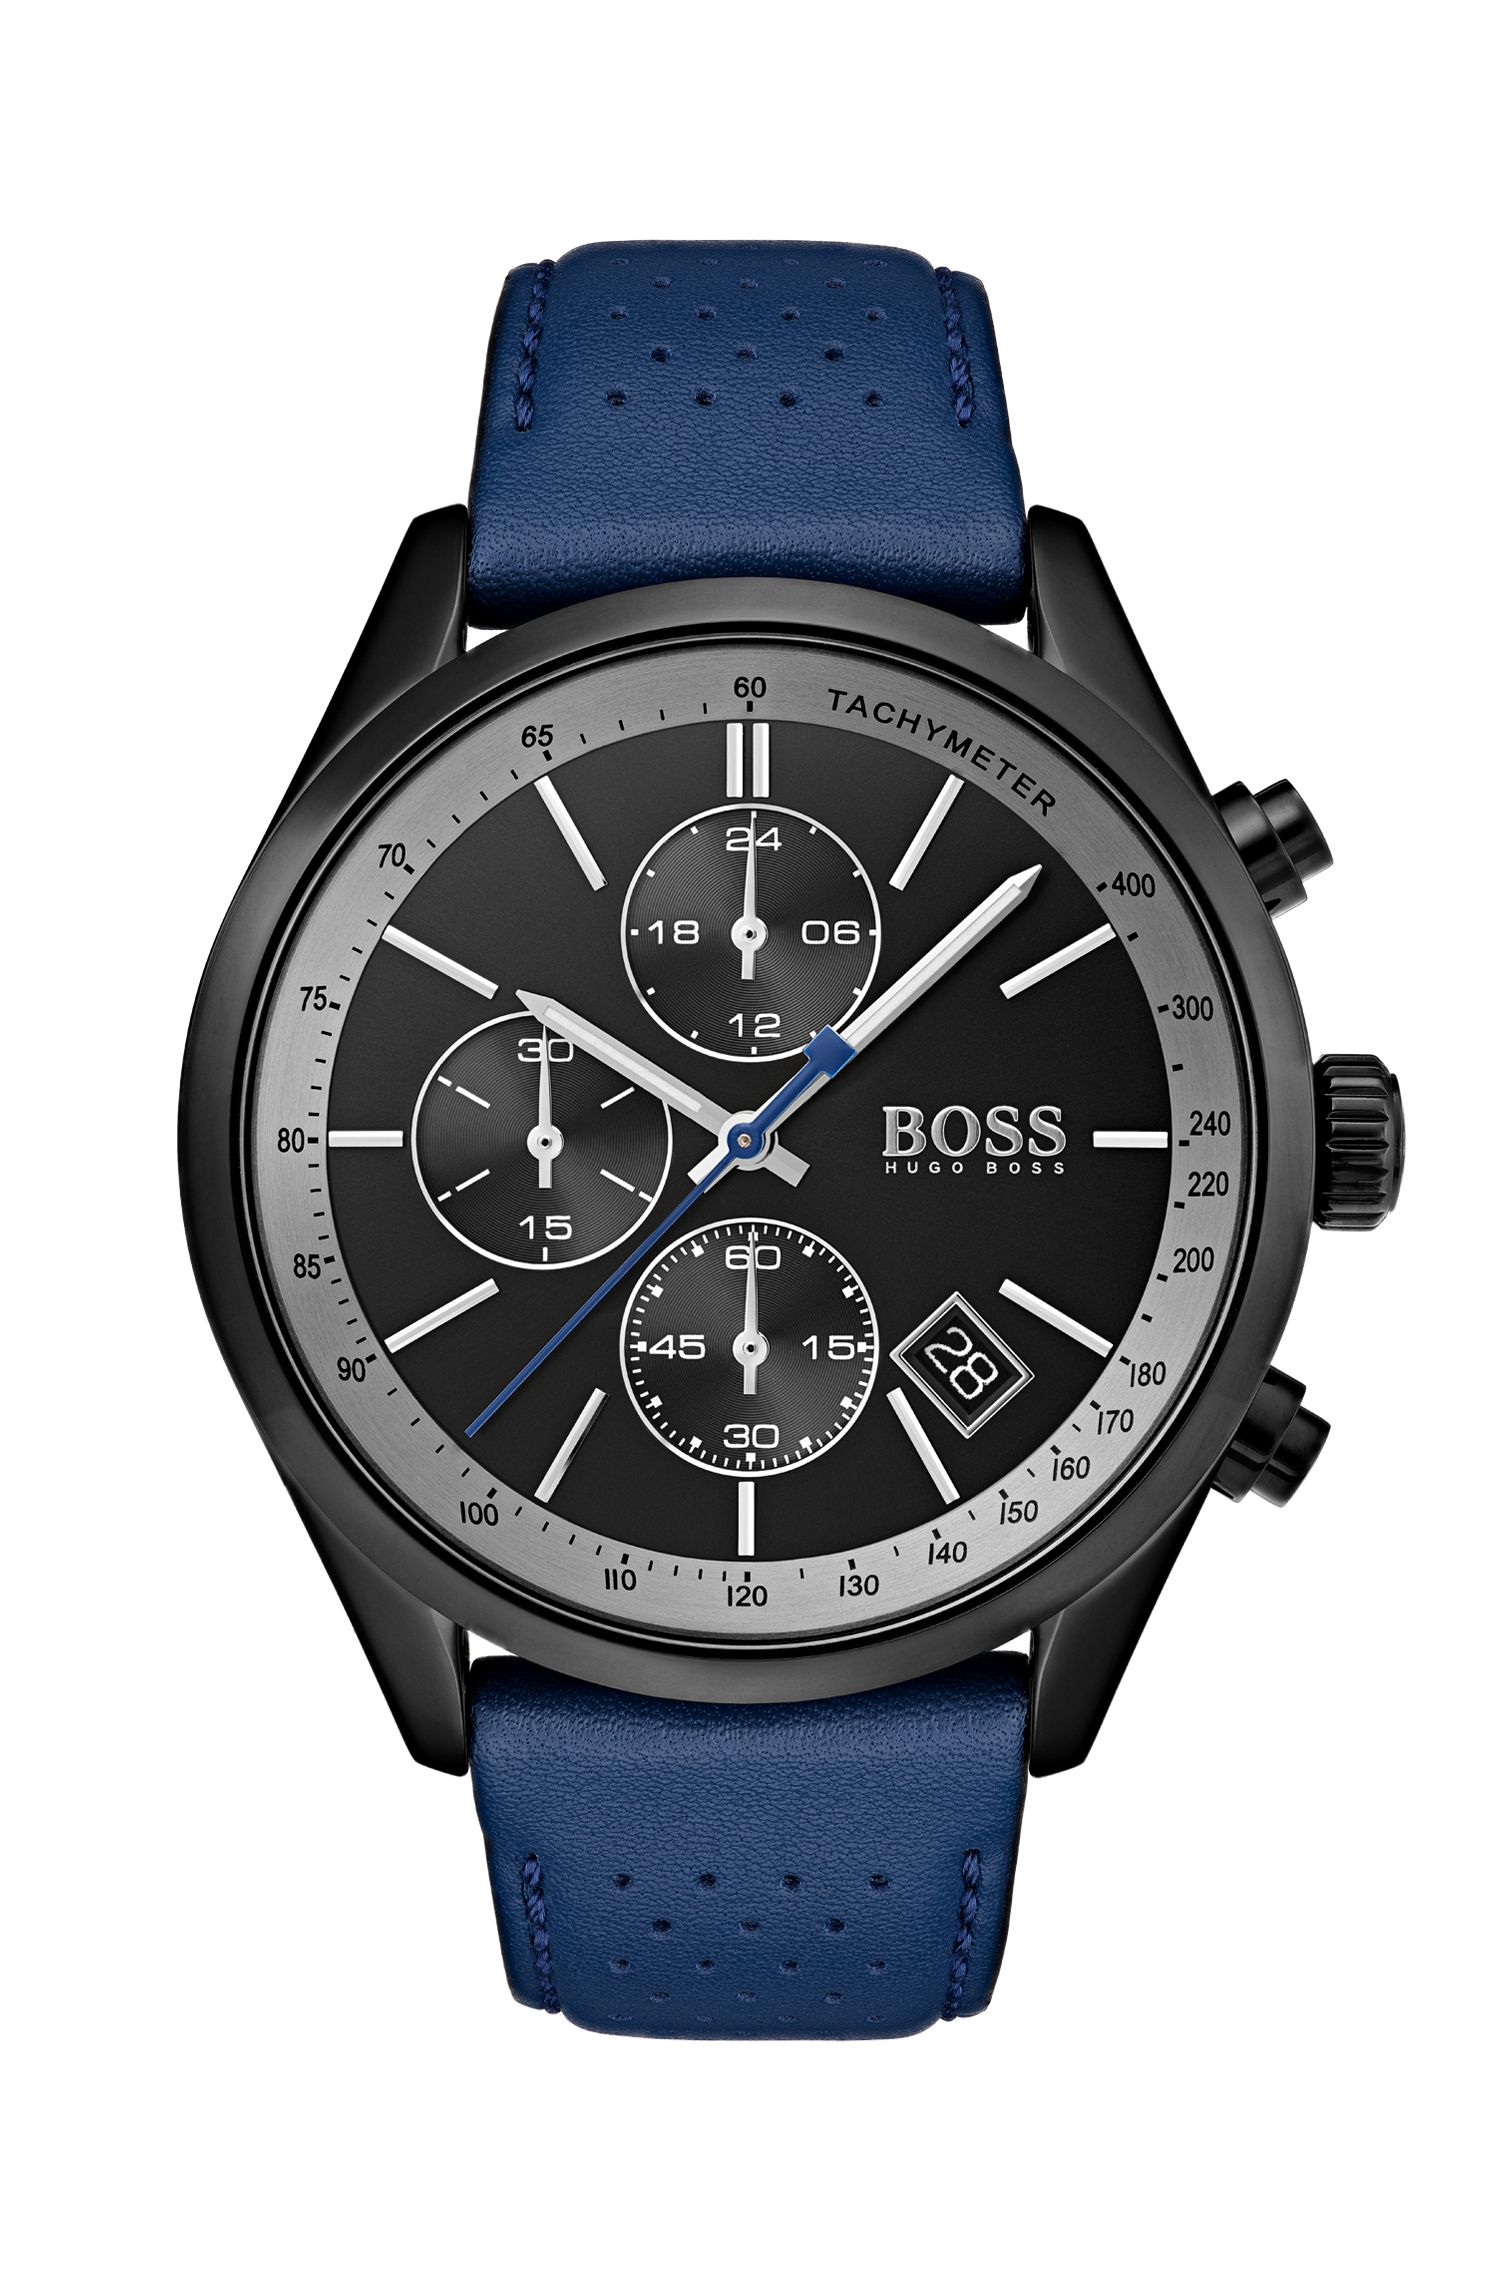 Black-dial watch with blue perforated leather strap